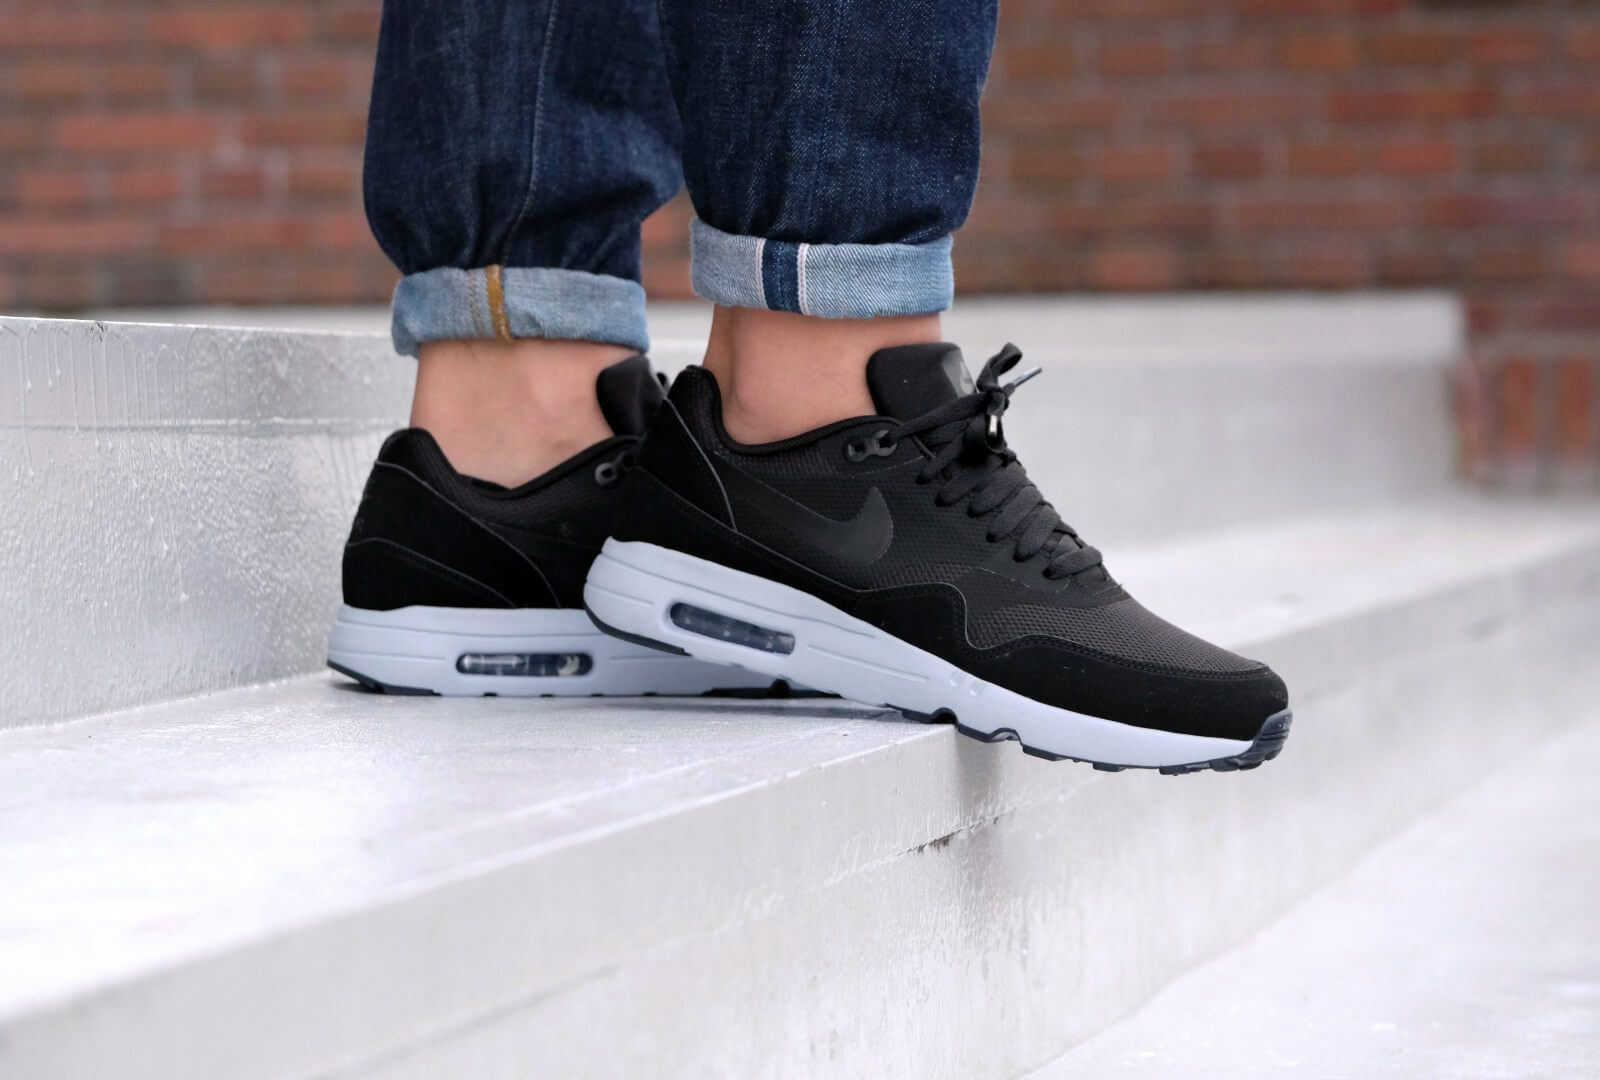 lowest price 980b3 b8f44 Nike Air Max 1 Ultra 2.0 Essential Black Wolf Grey Dark Grey Mens Sale